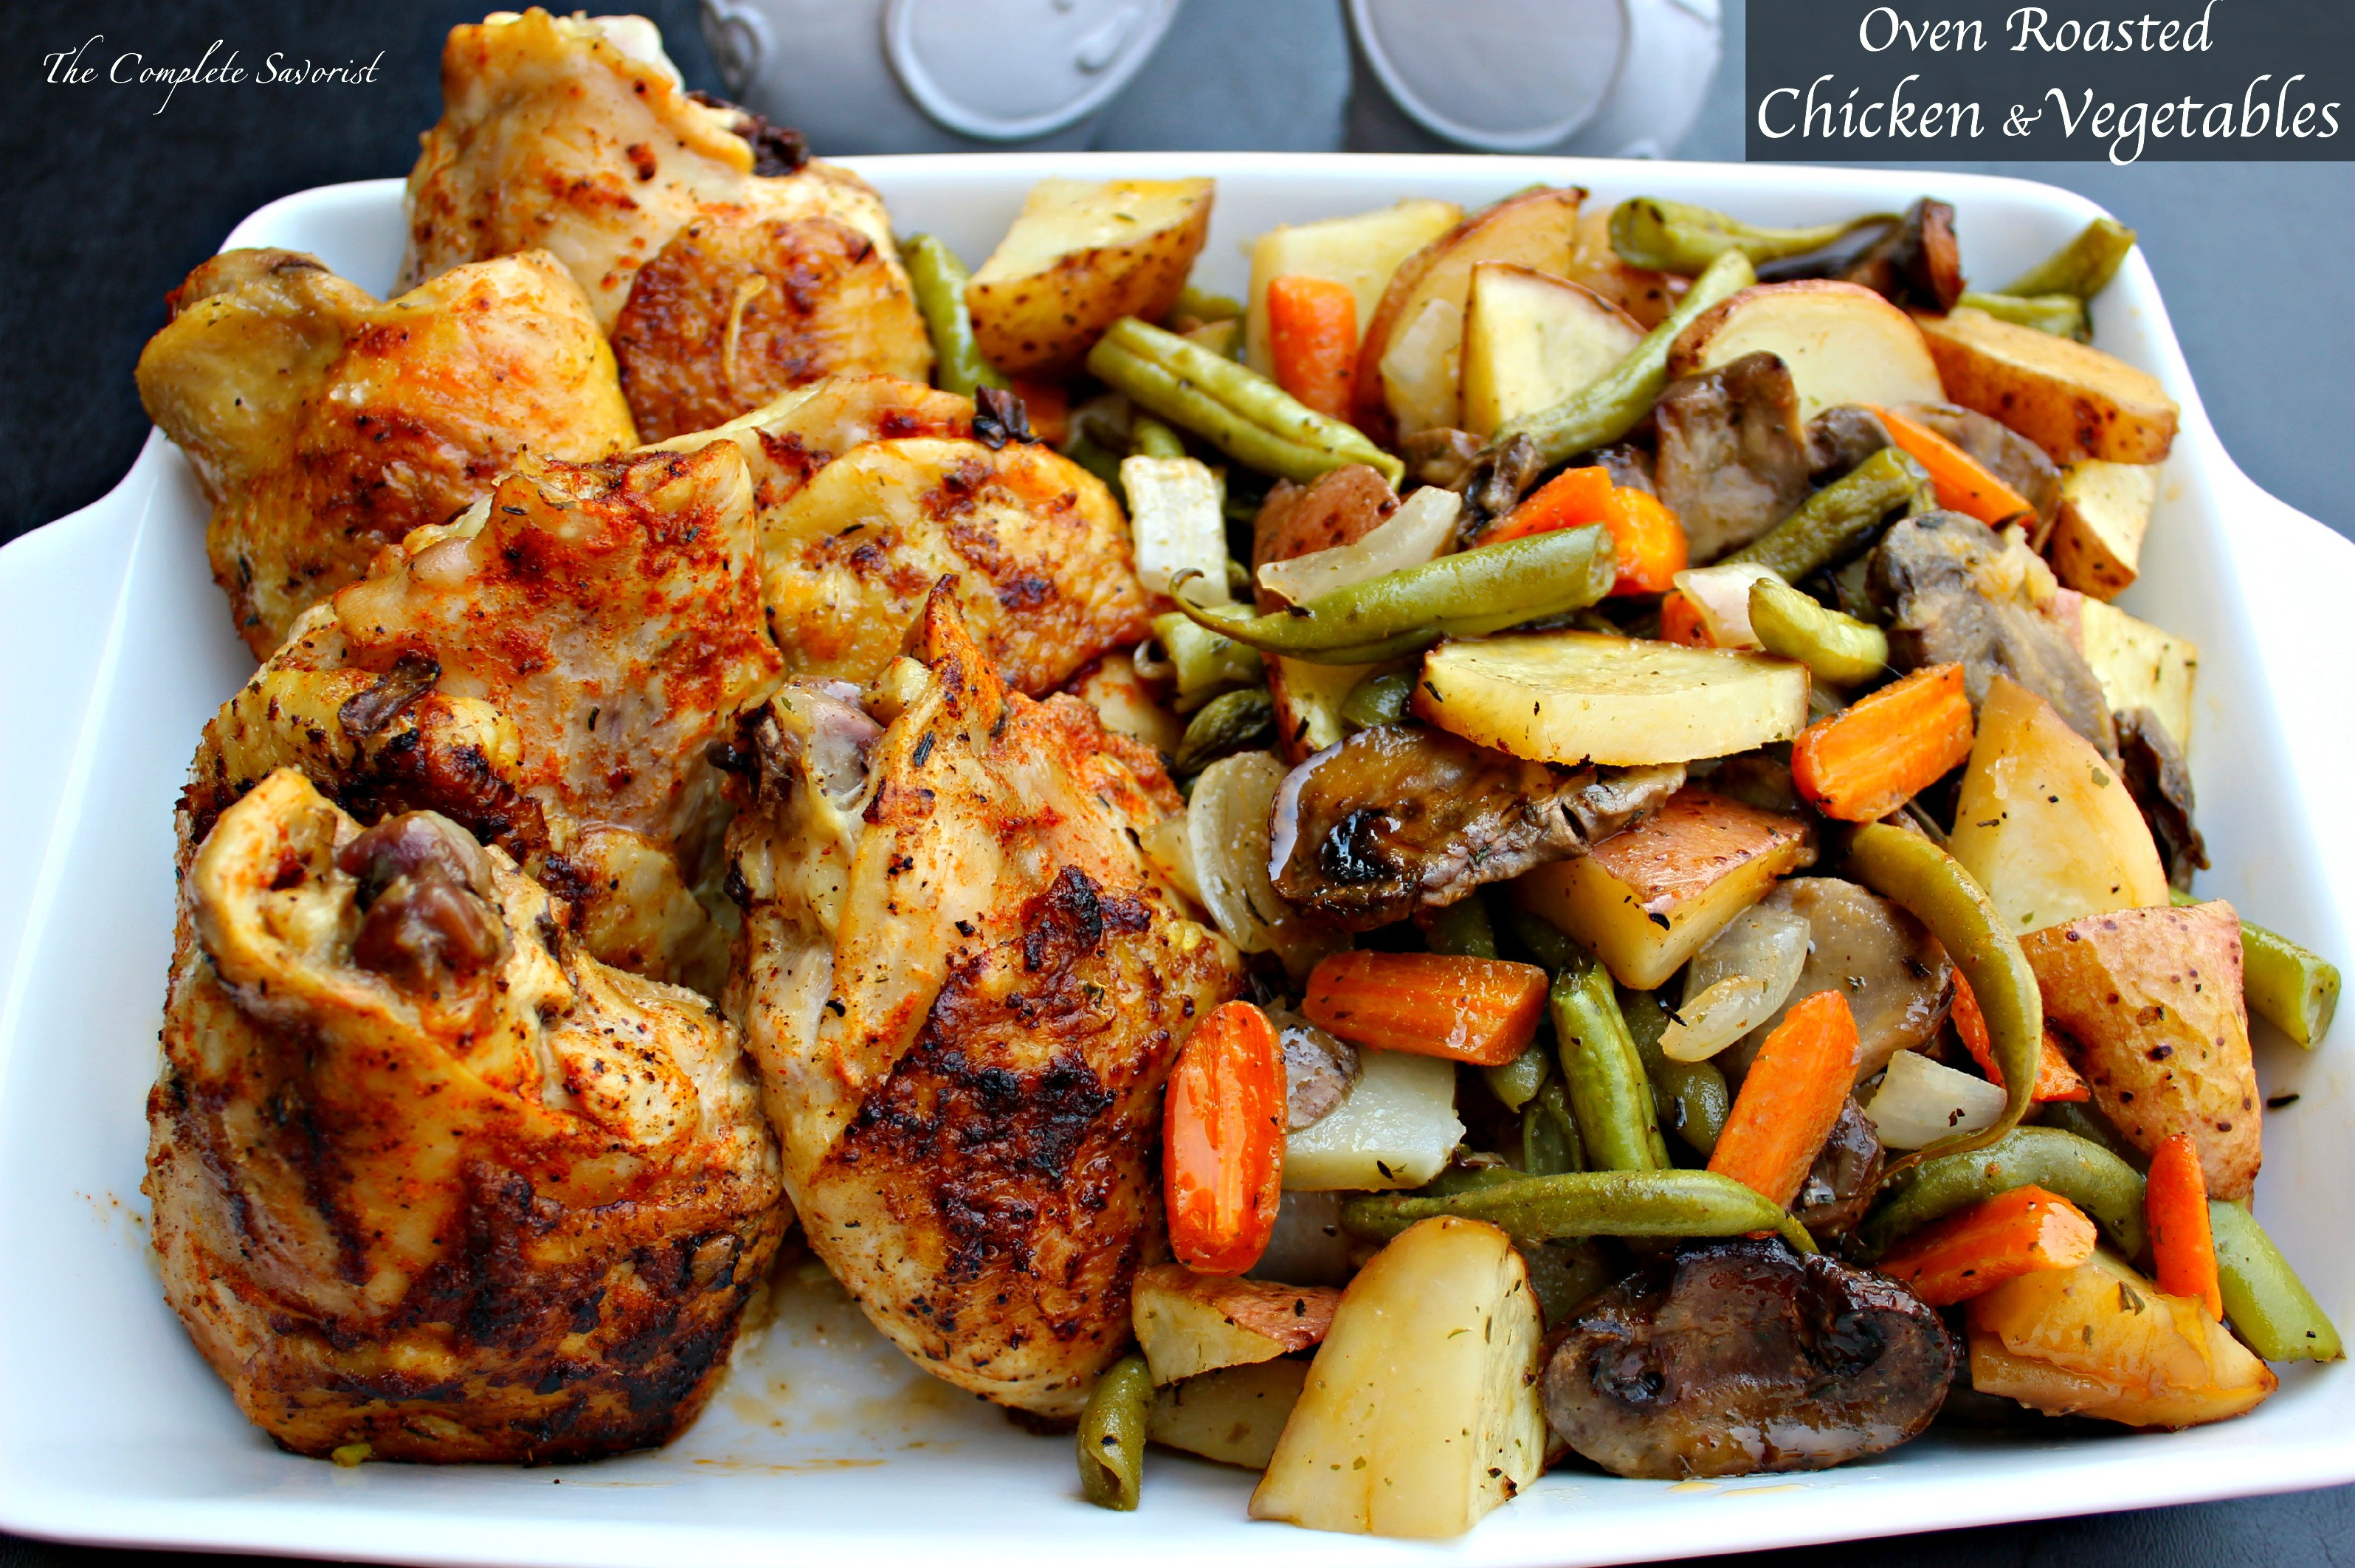 Baked Chicken And Vegetables  Oven Roasted Chicken and Ve ables The plete Savorist